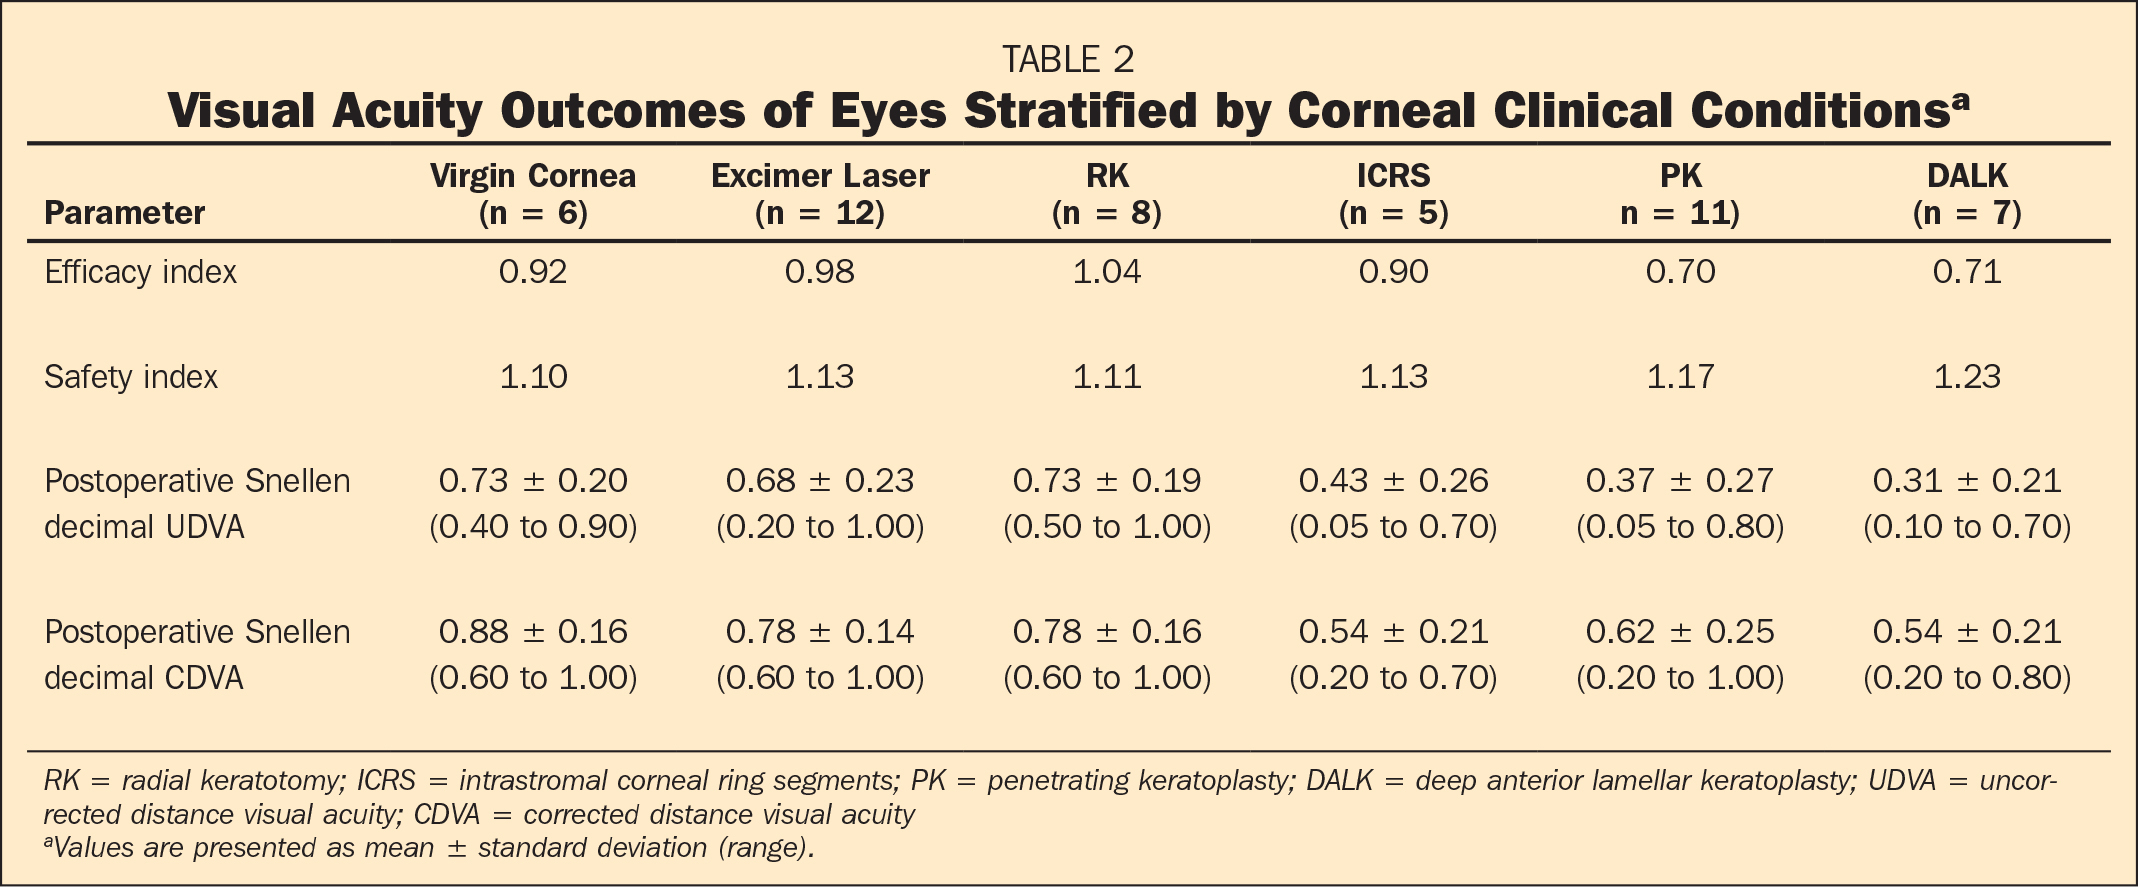 Visual Acuity Outcomes of Eyes Stratified by Corneal Clinical Conditionsa